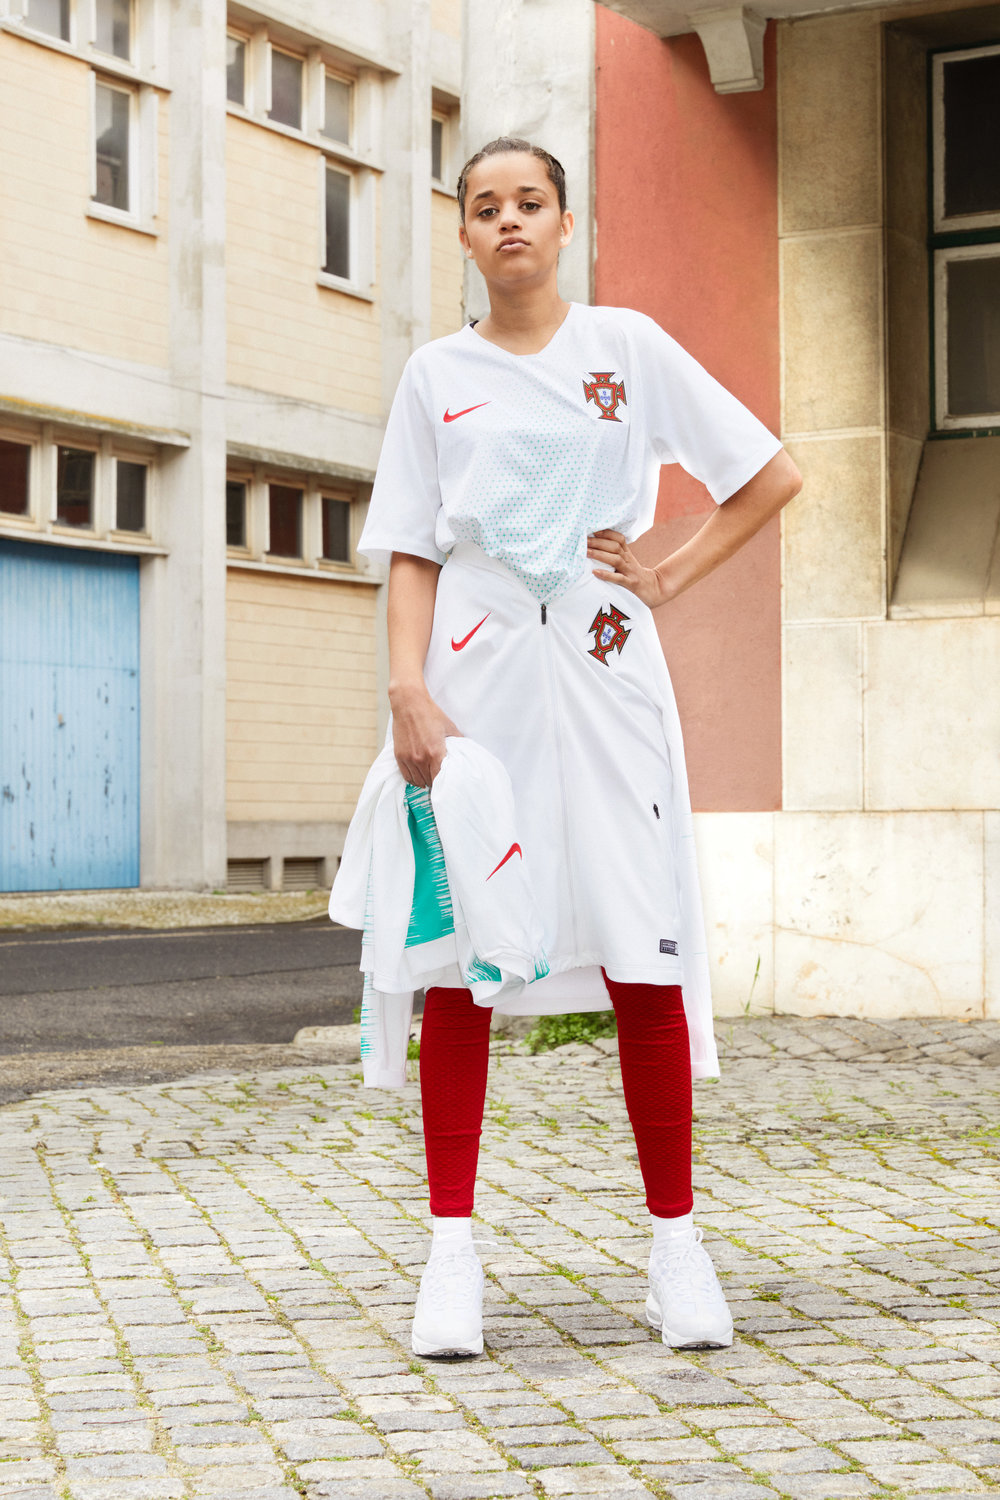 Nike_News_2018_Portuguese_Football_Federation_Collection_7_78115.jpg